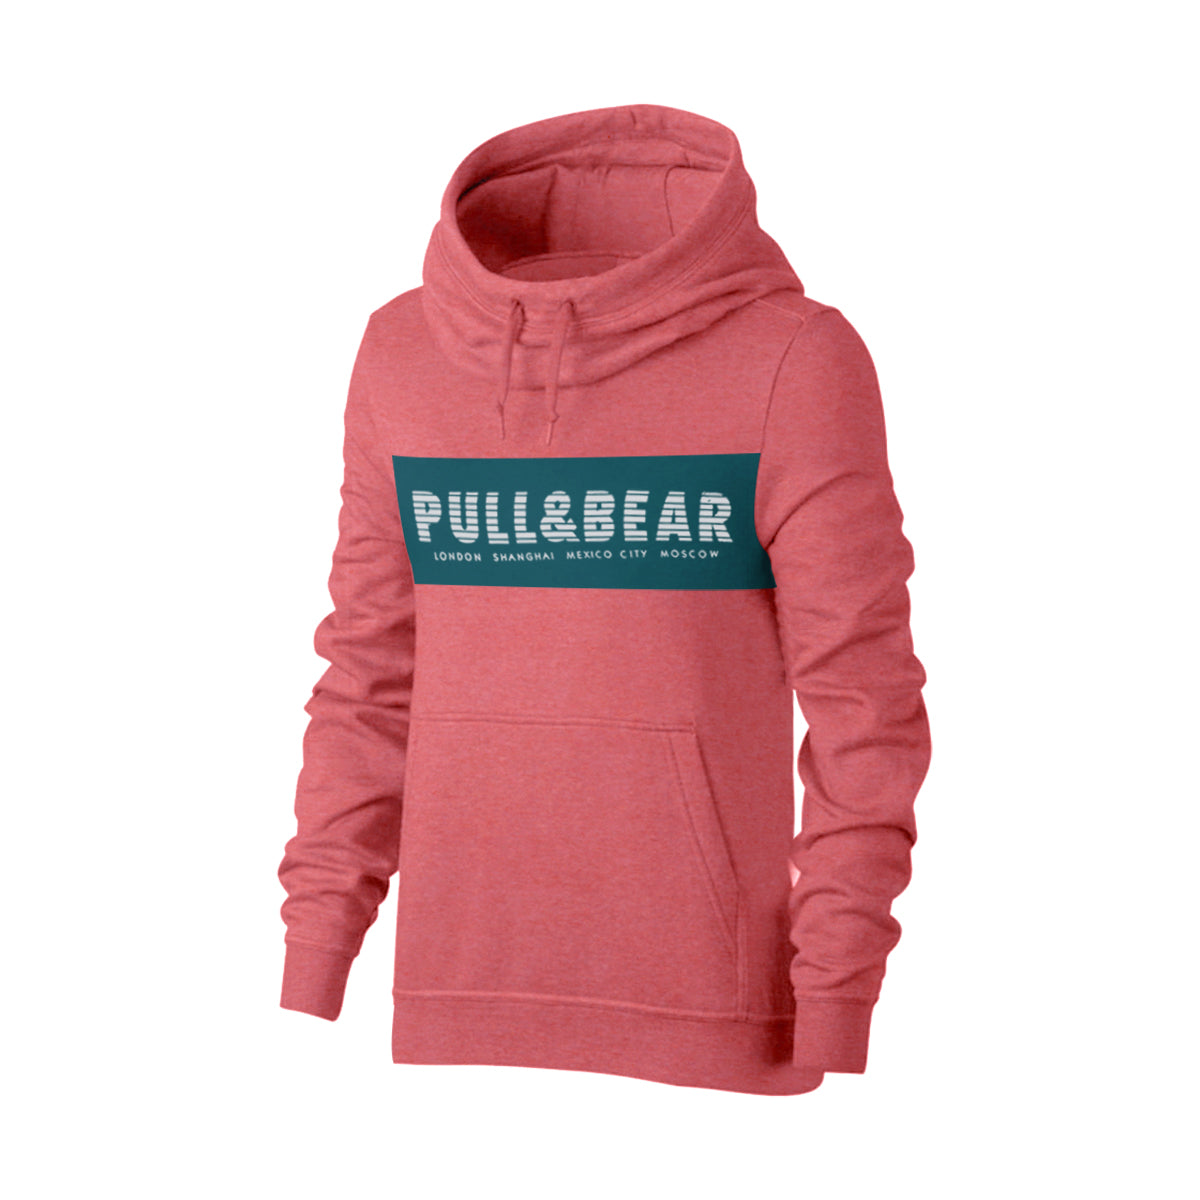 Pull & Bear Fleece Pullover Hoodie For Men-Dark Pink Melange With Prussian Blue Panel-BE13459